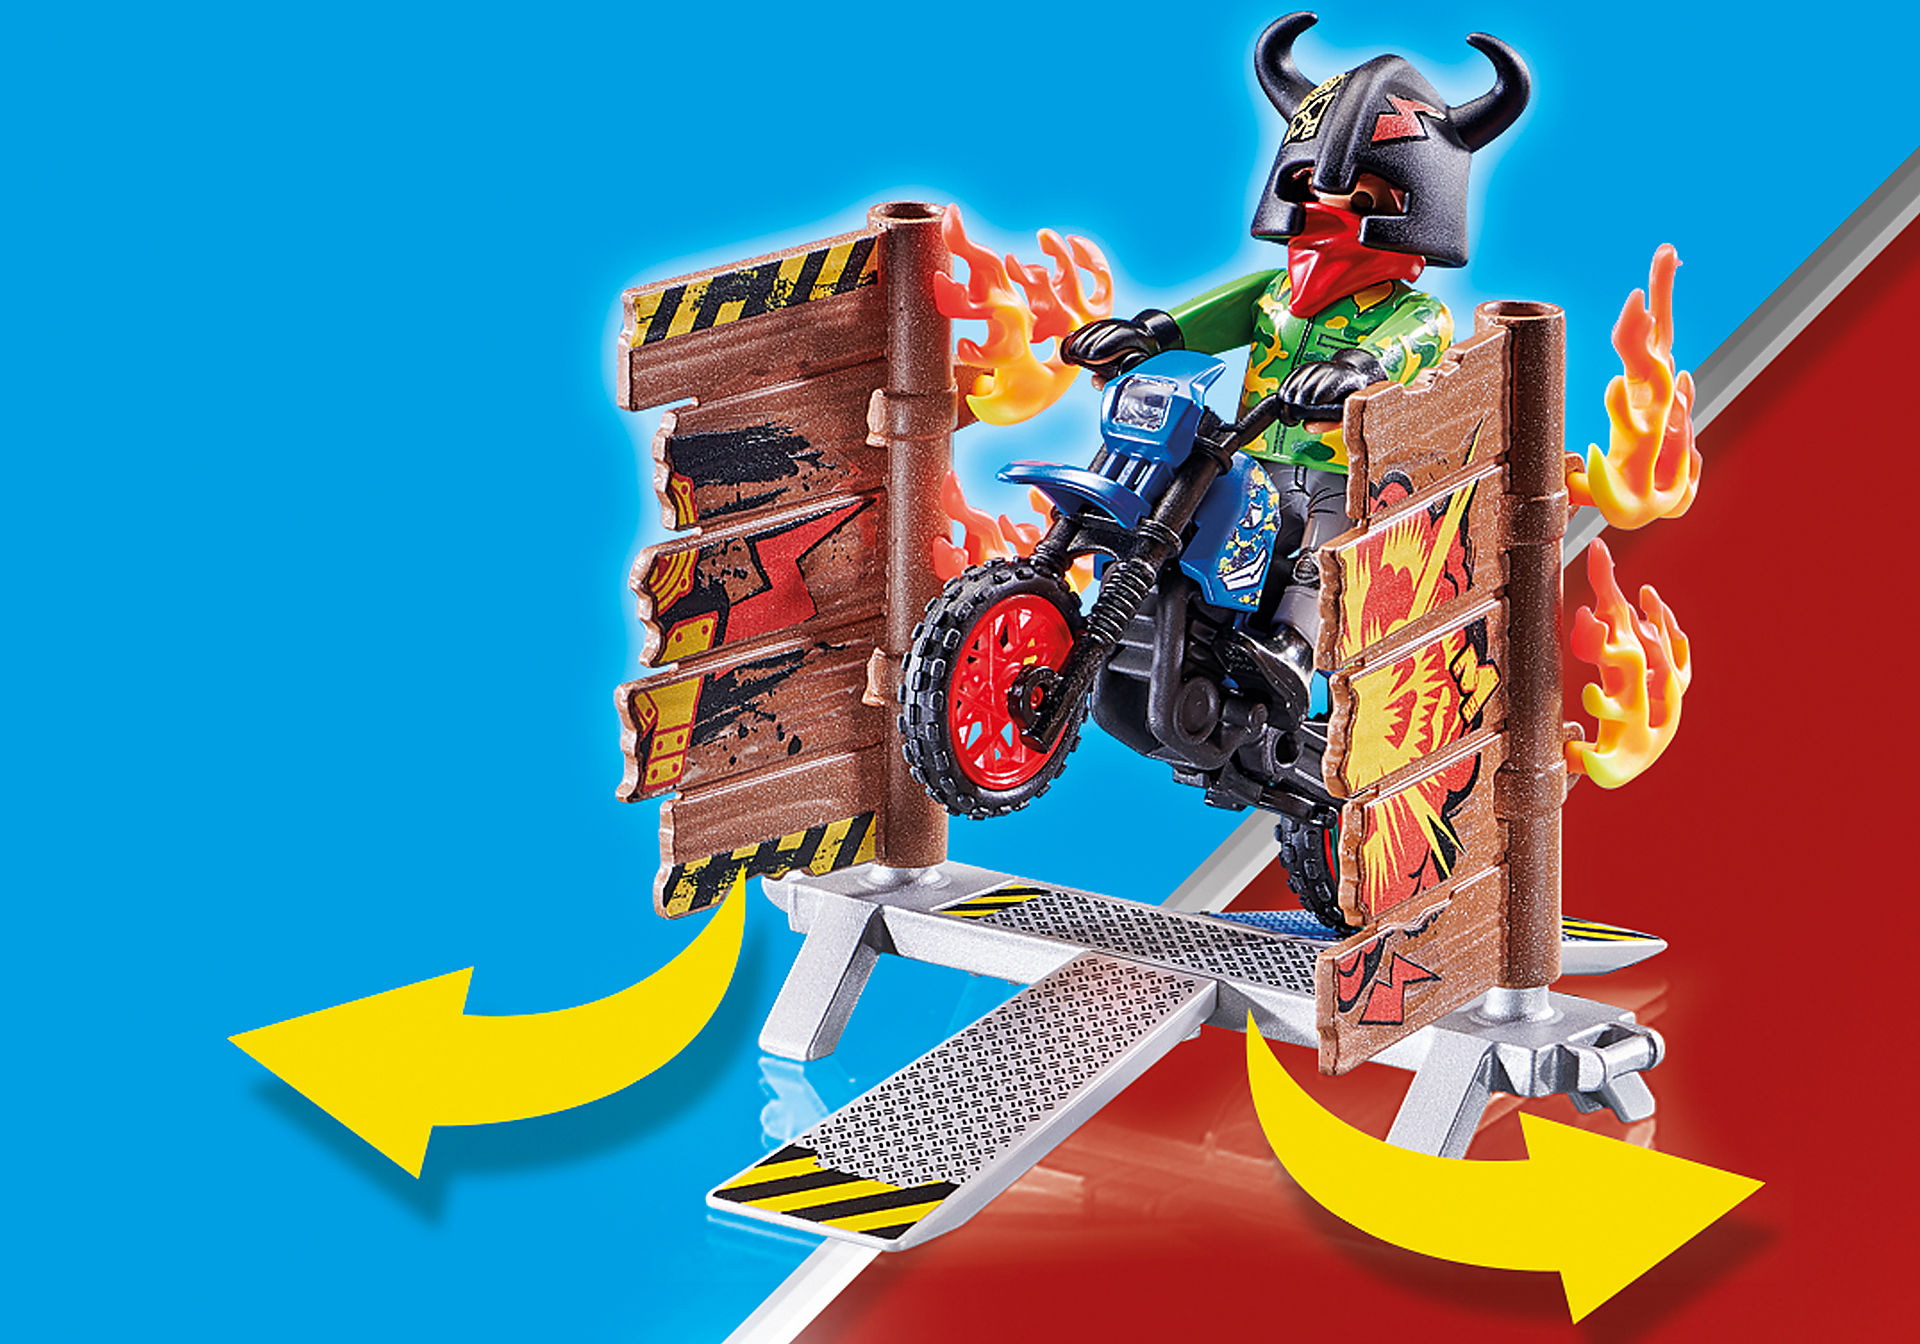 70553 Stunt Show Motocross with Fiery Wall zoom image5